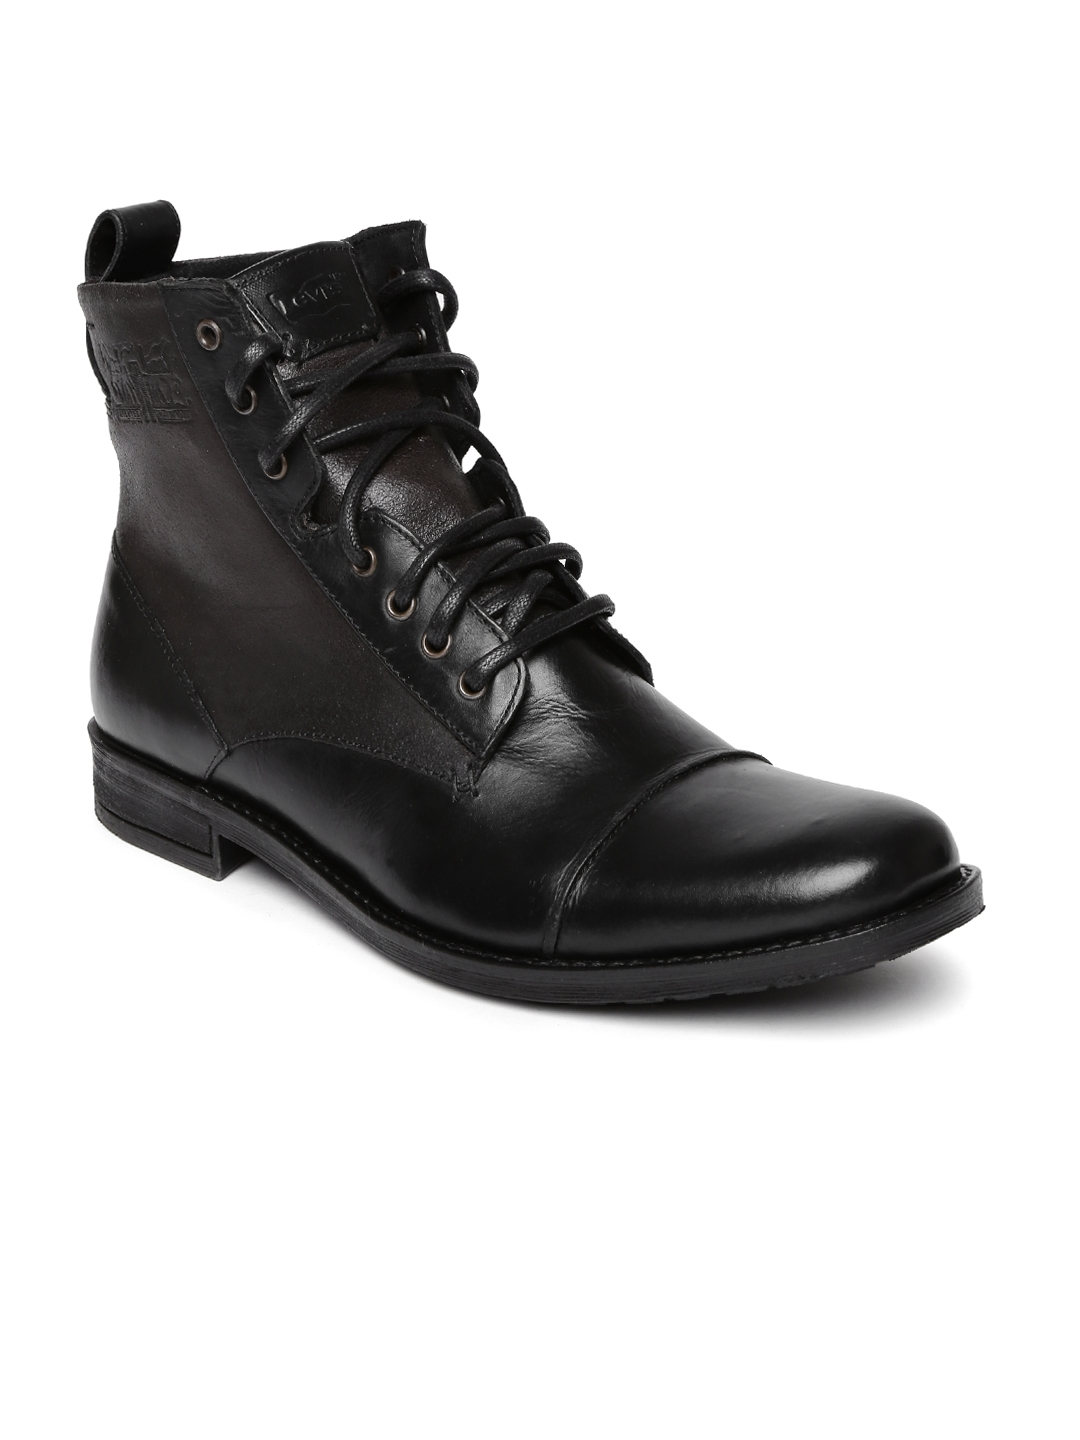 db4bf7b0322 Levi's Men Black Leather Boots